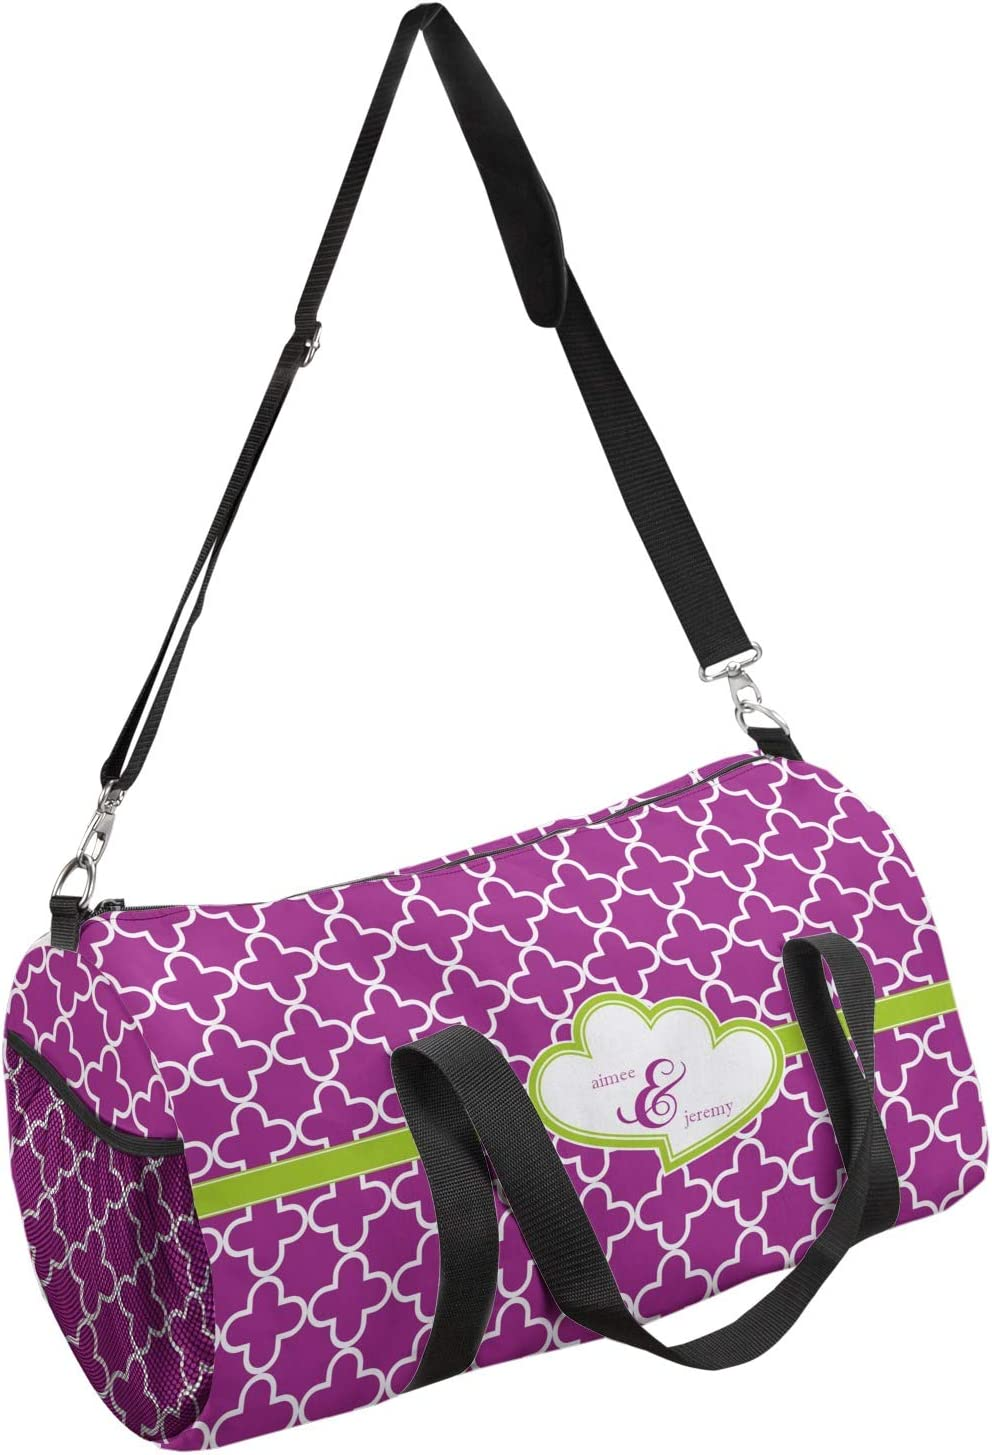 YouCustomizeIt Clover Duffel Bag Personalized